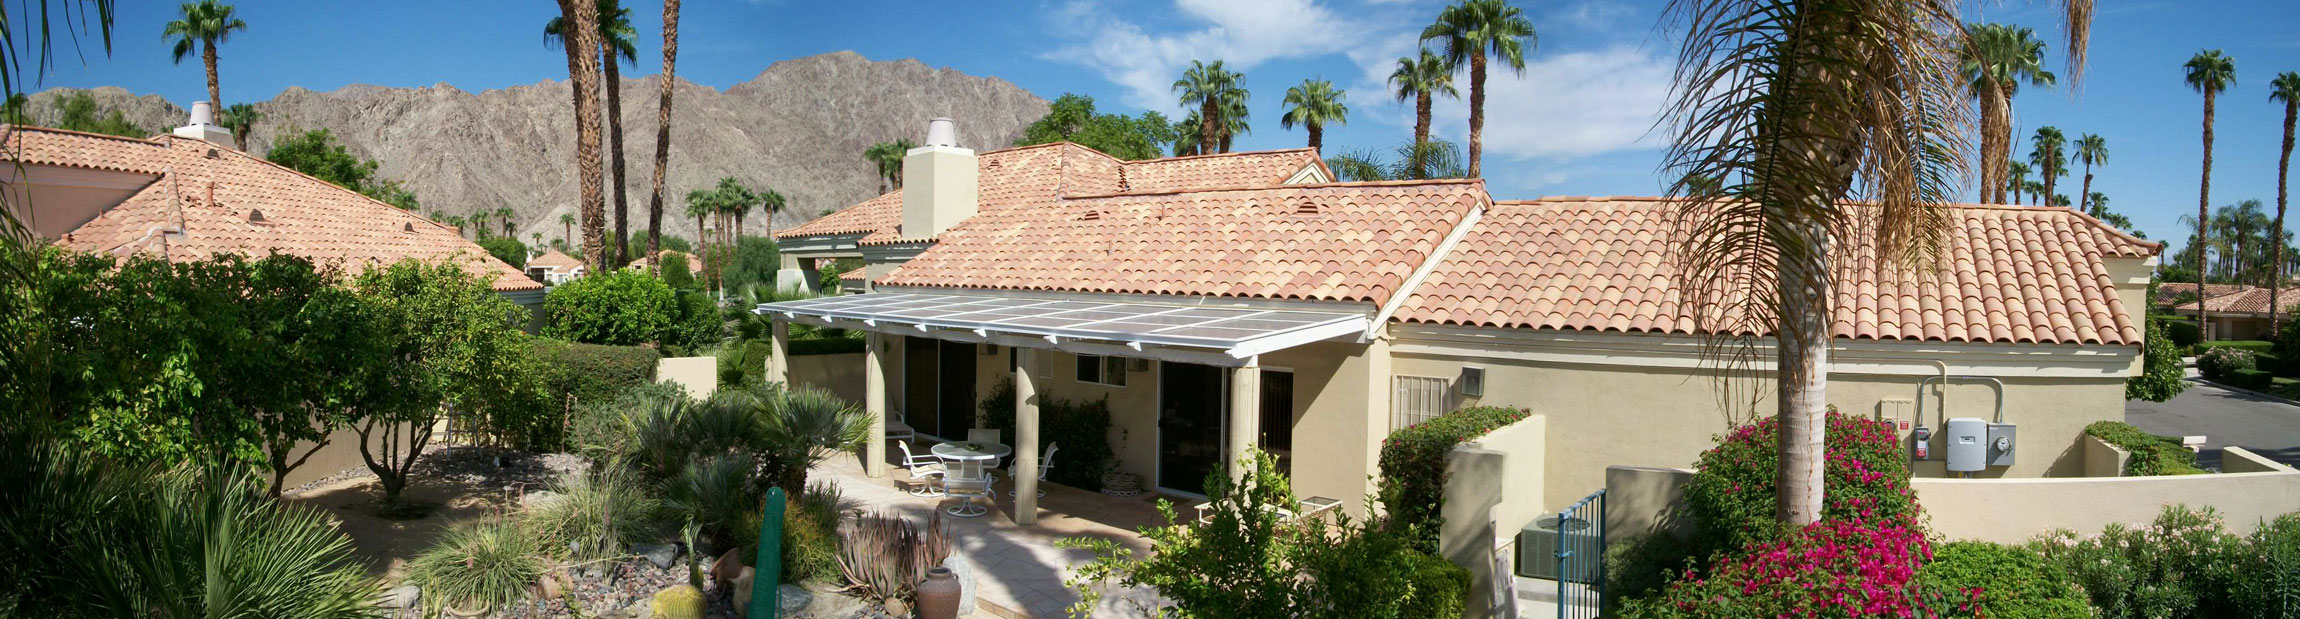 Solar Canopies U0026 Awning Systems